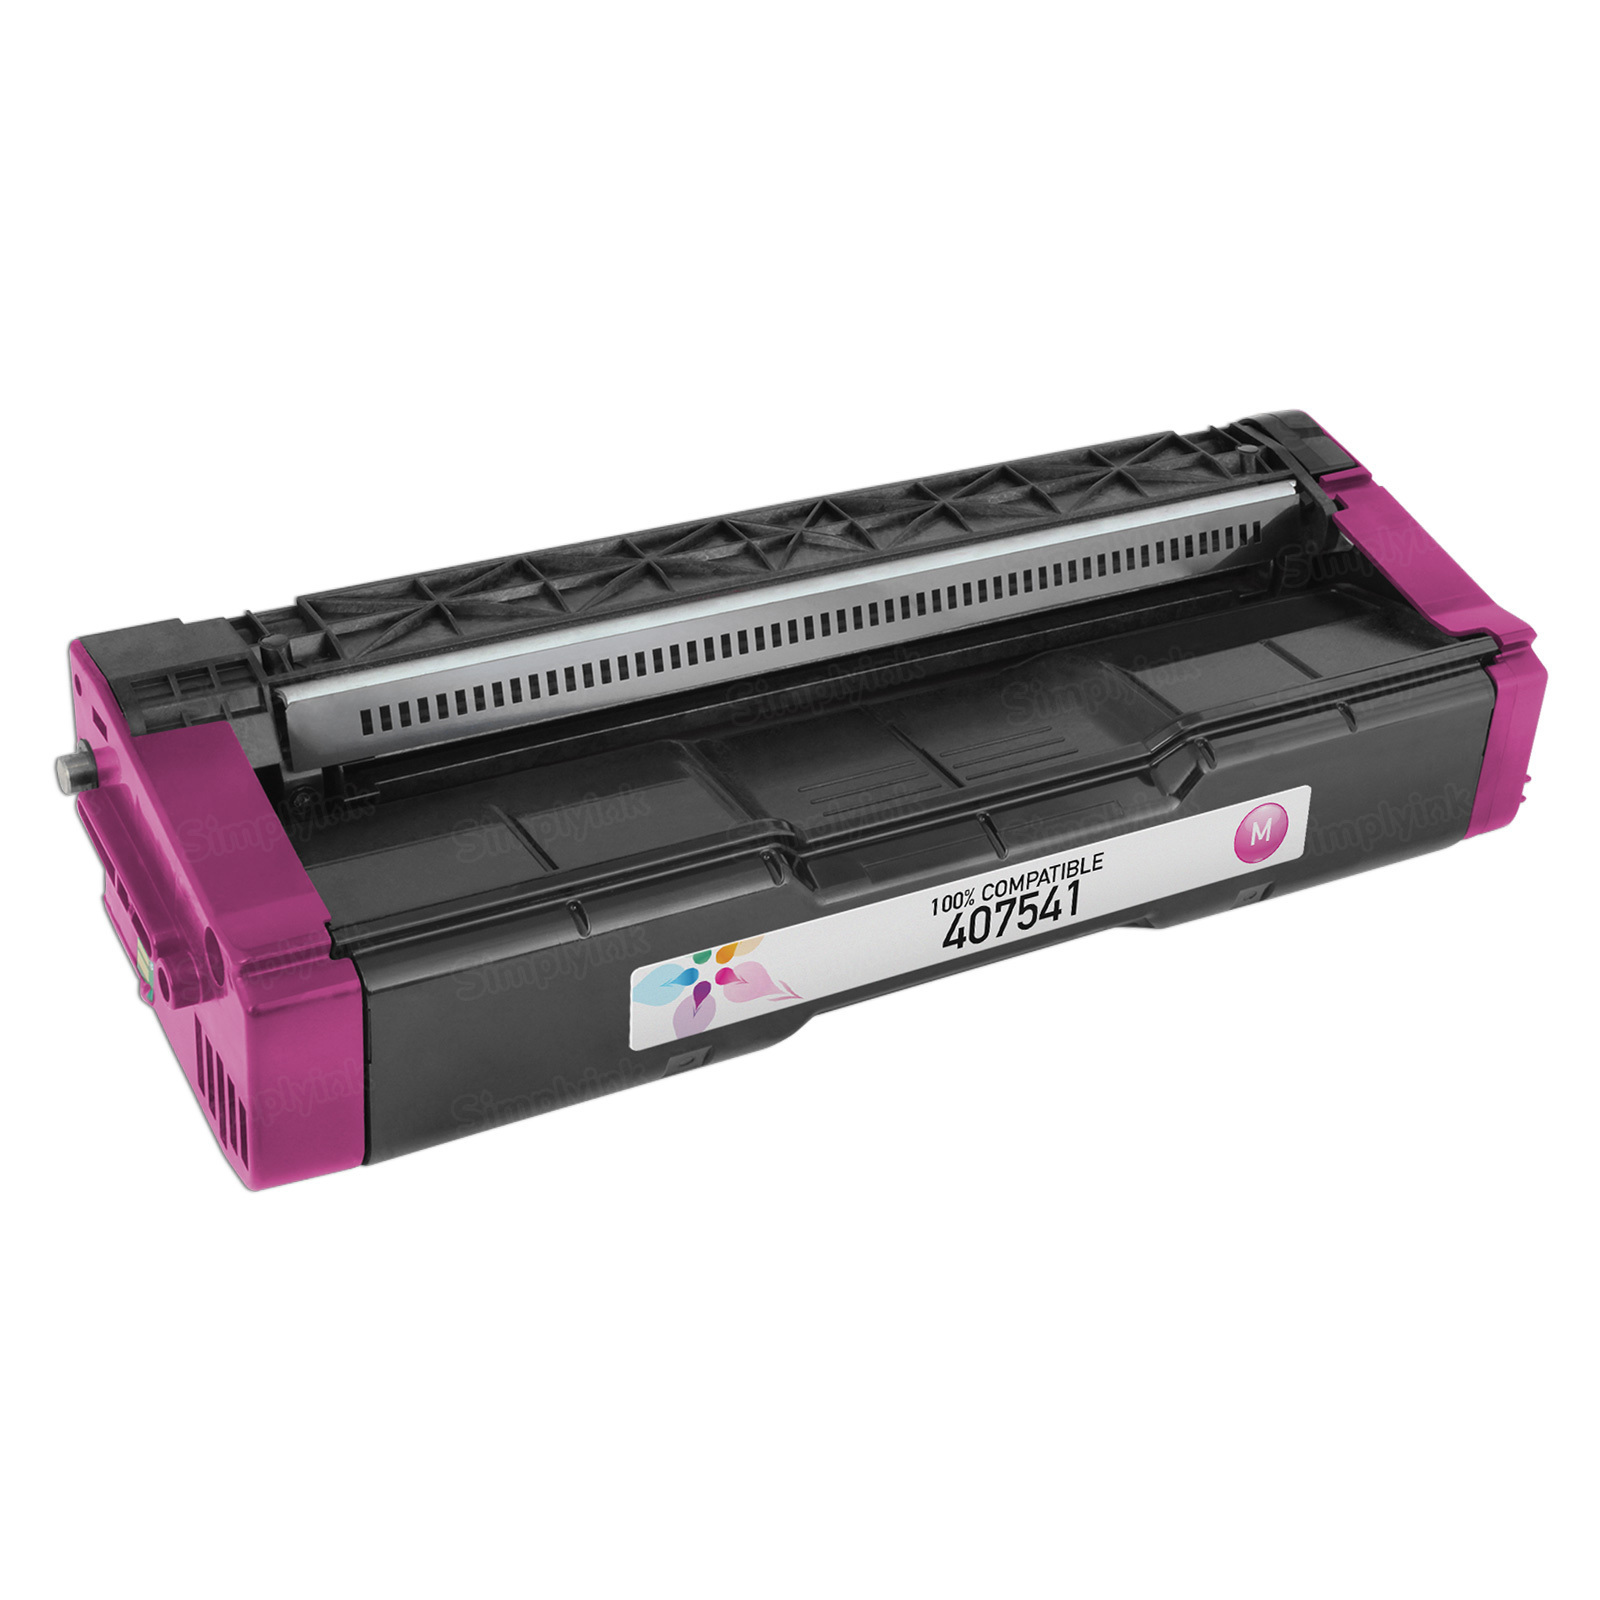 Compatible 407541 Magenta Toner for Ricoh